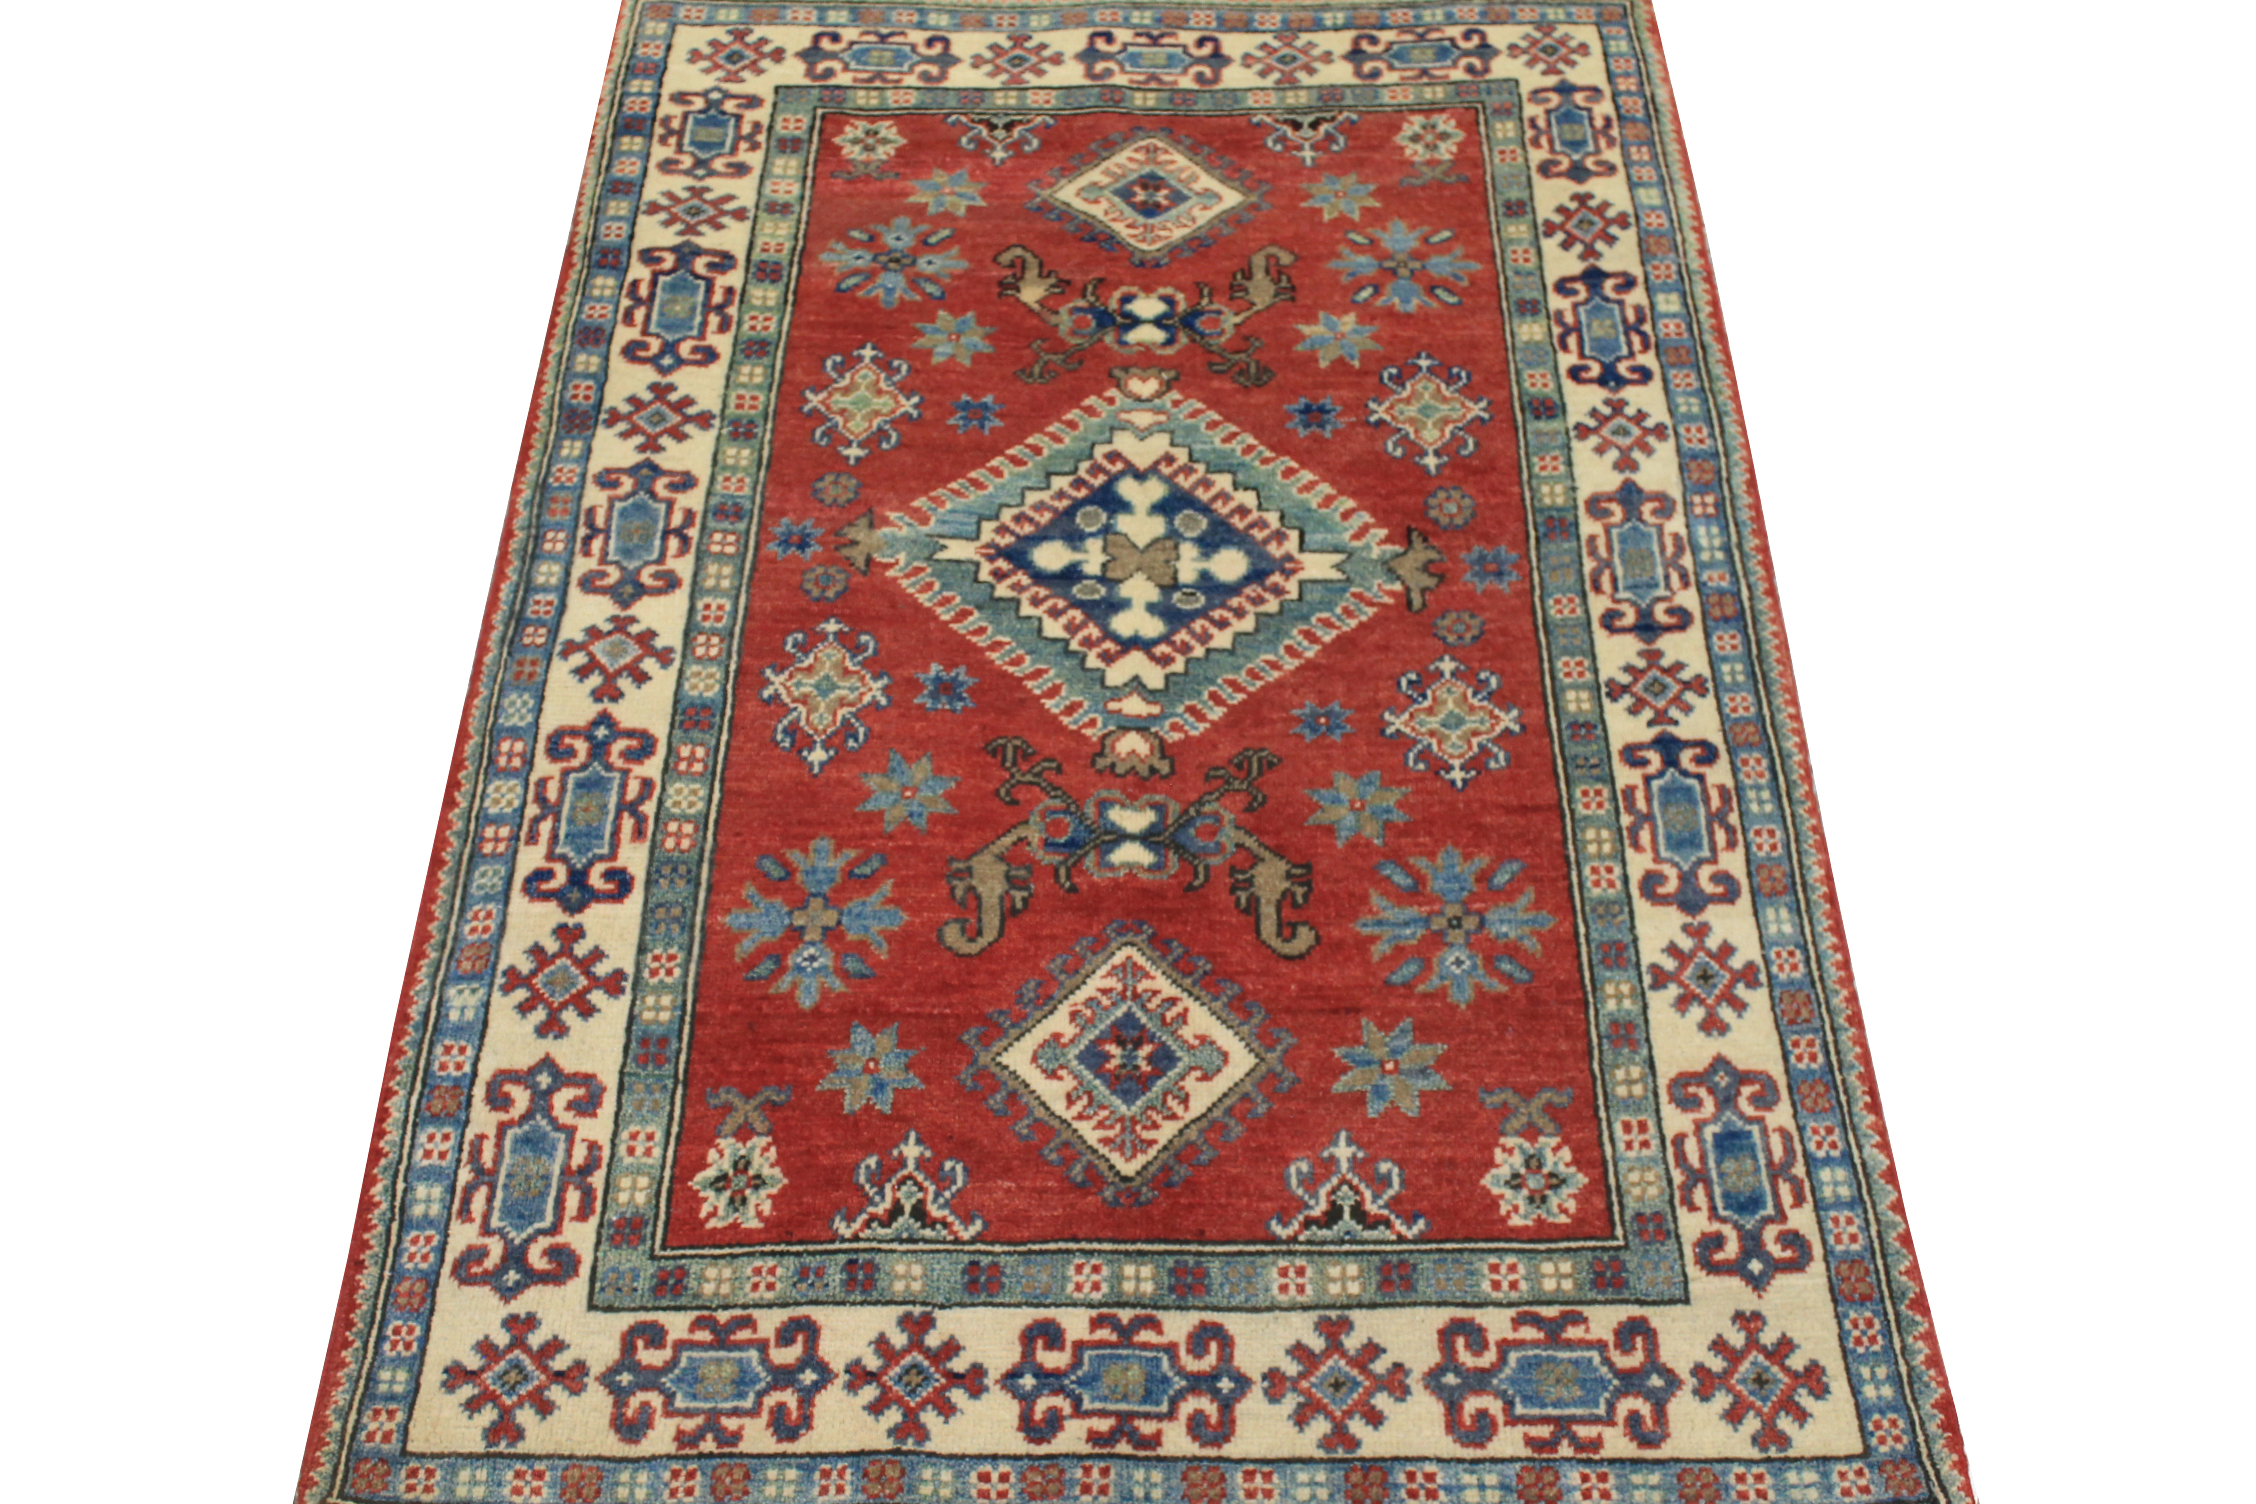 3x5 Kazak Hand Knotted Wool Area Rug - MR024536